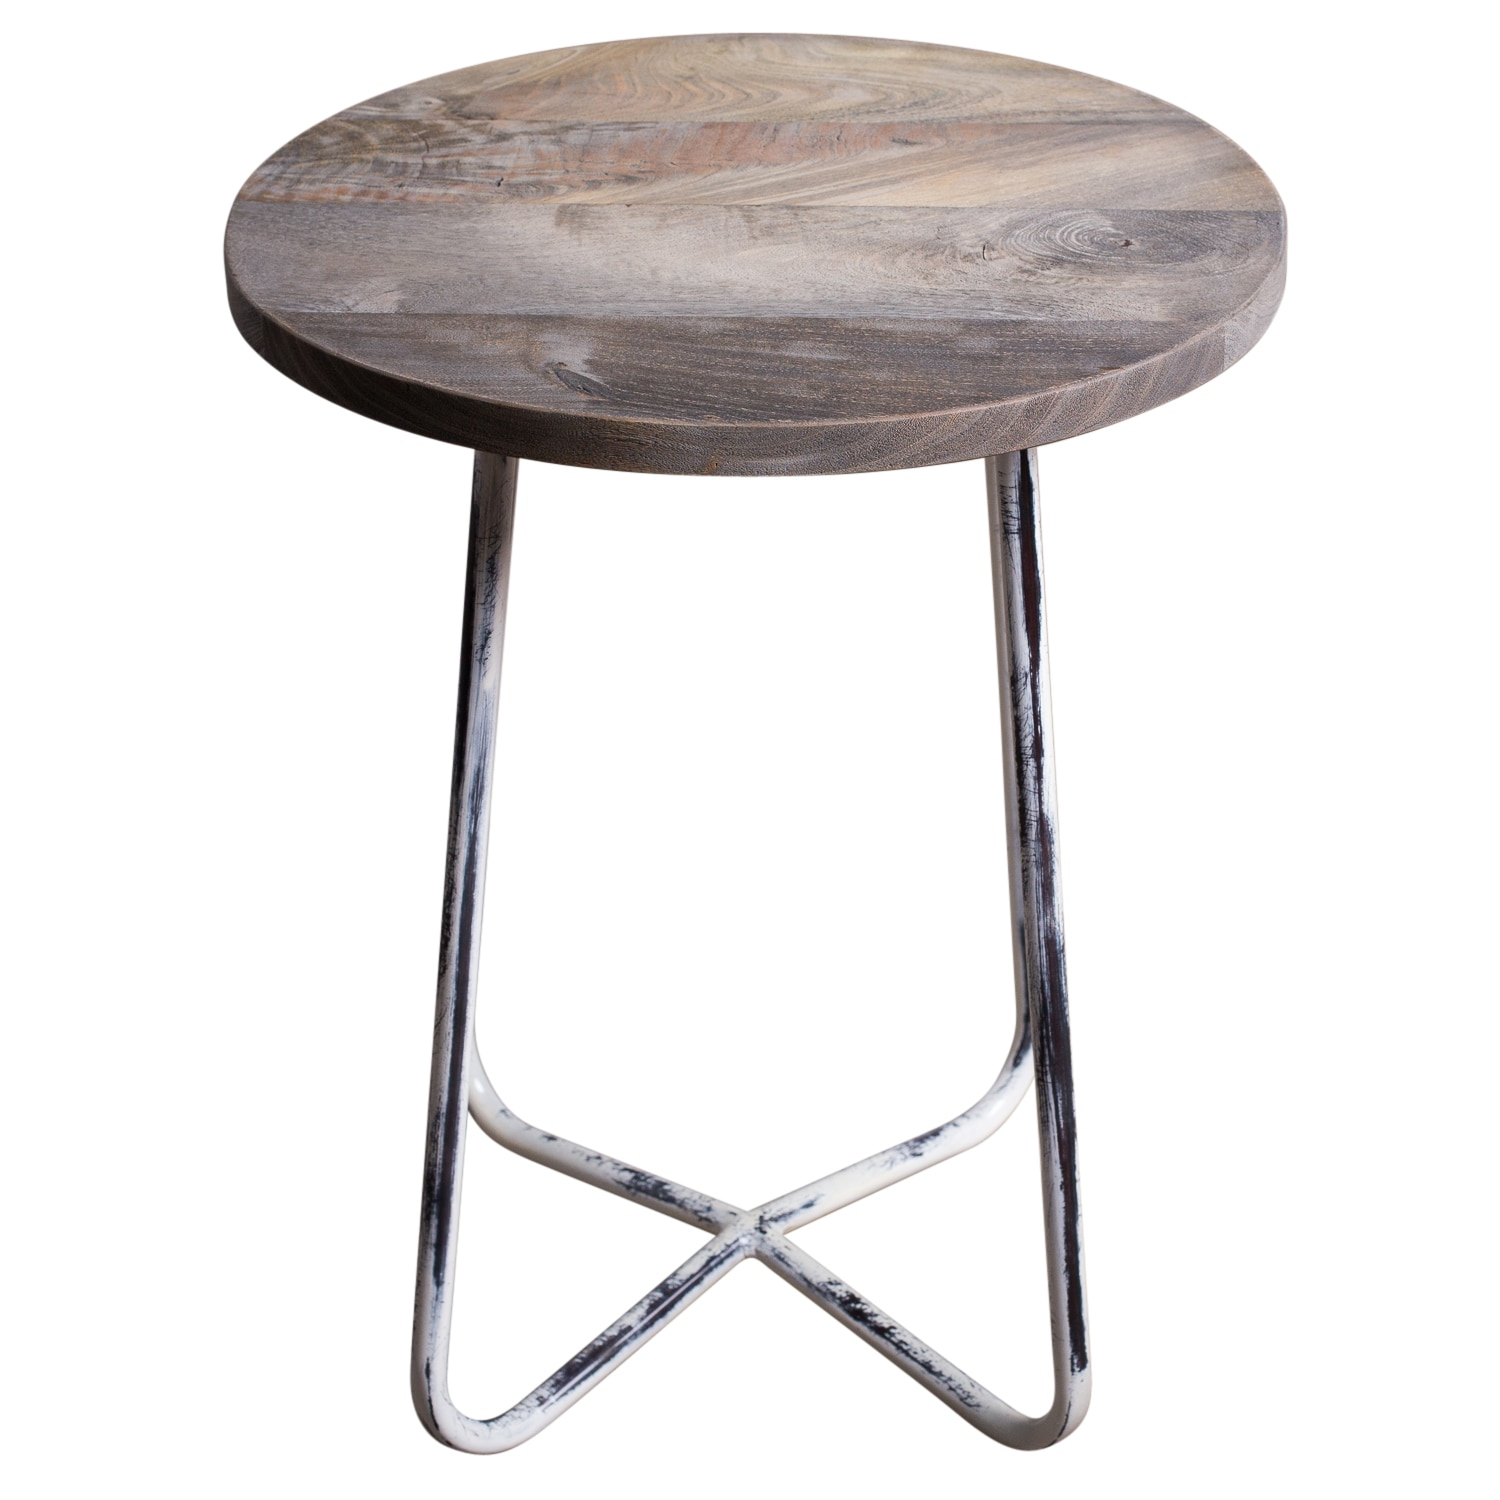 Side Table India.Handmade Distressed Wood And Metal Farm Side Table India